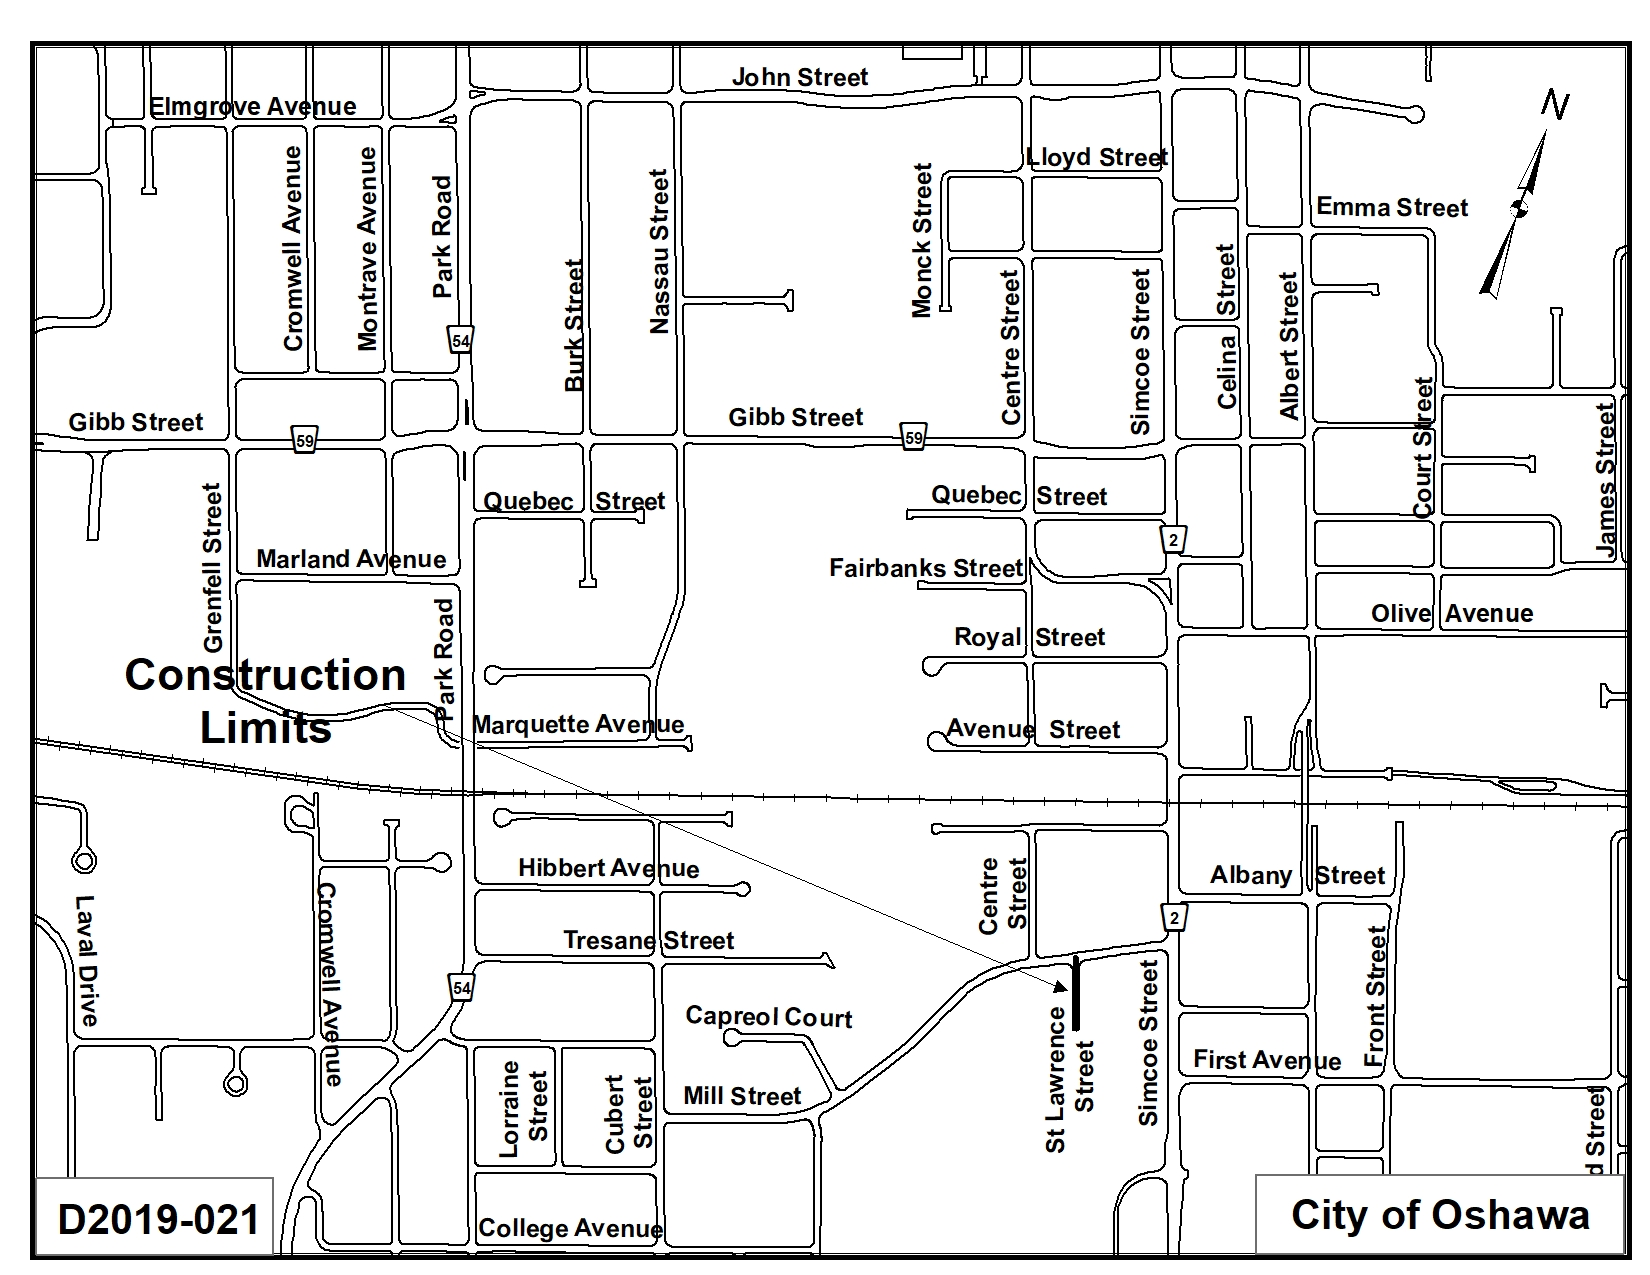 Map of St. Lawrence Street